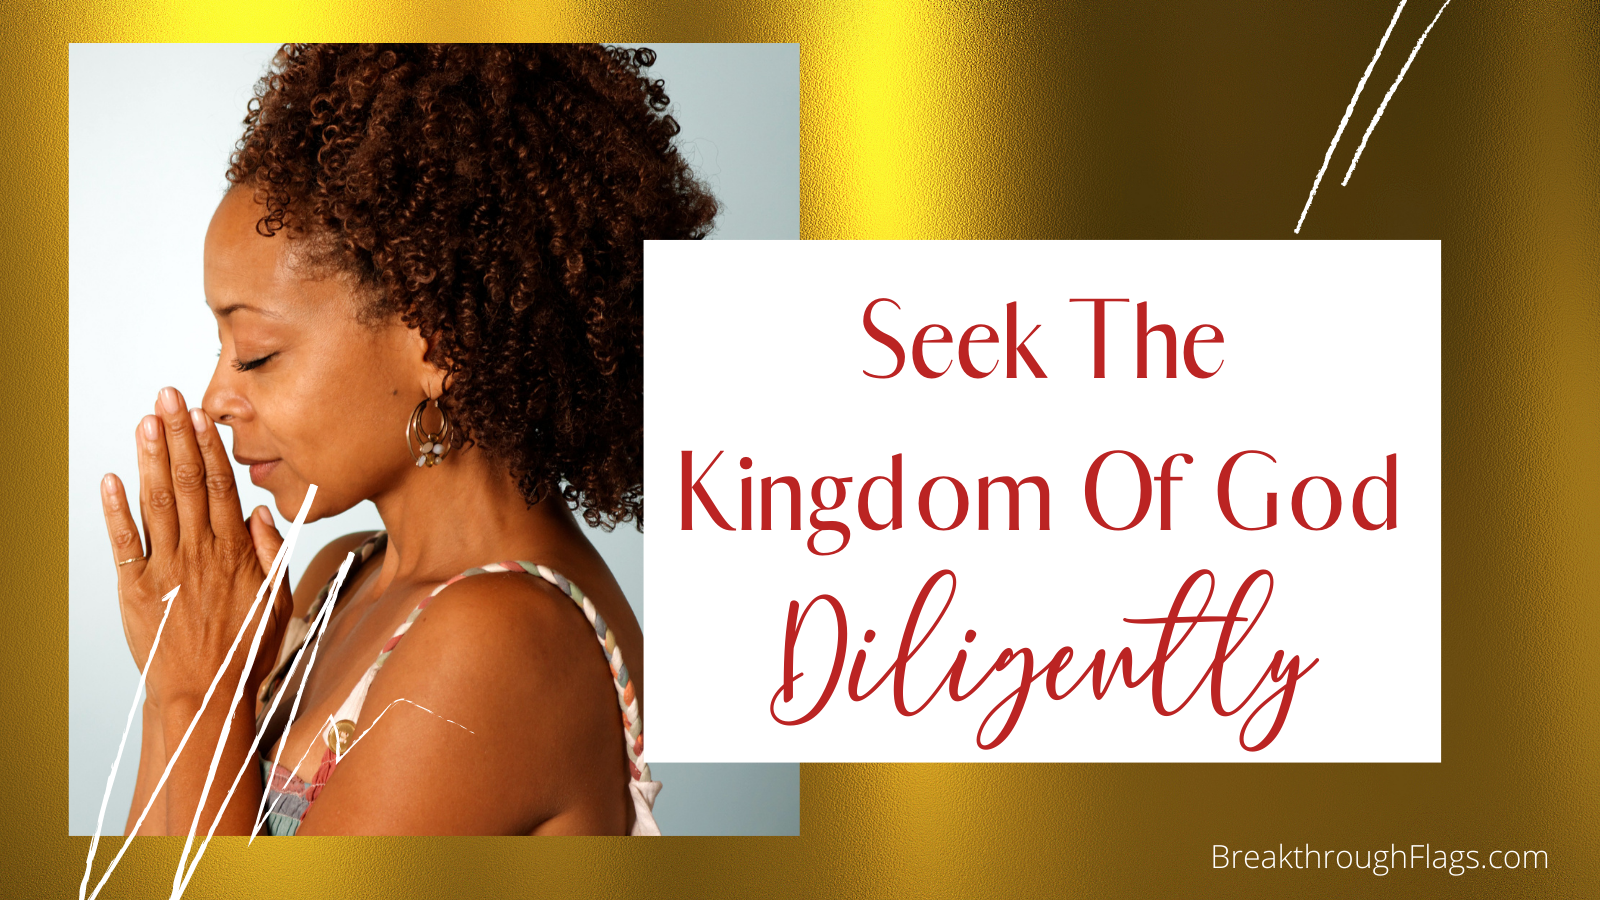 Seek the Kingdom of God Diligently